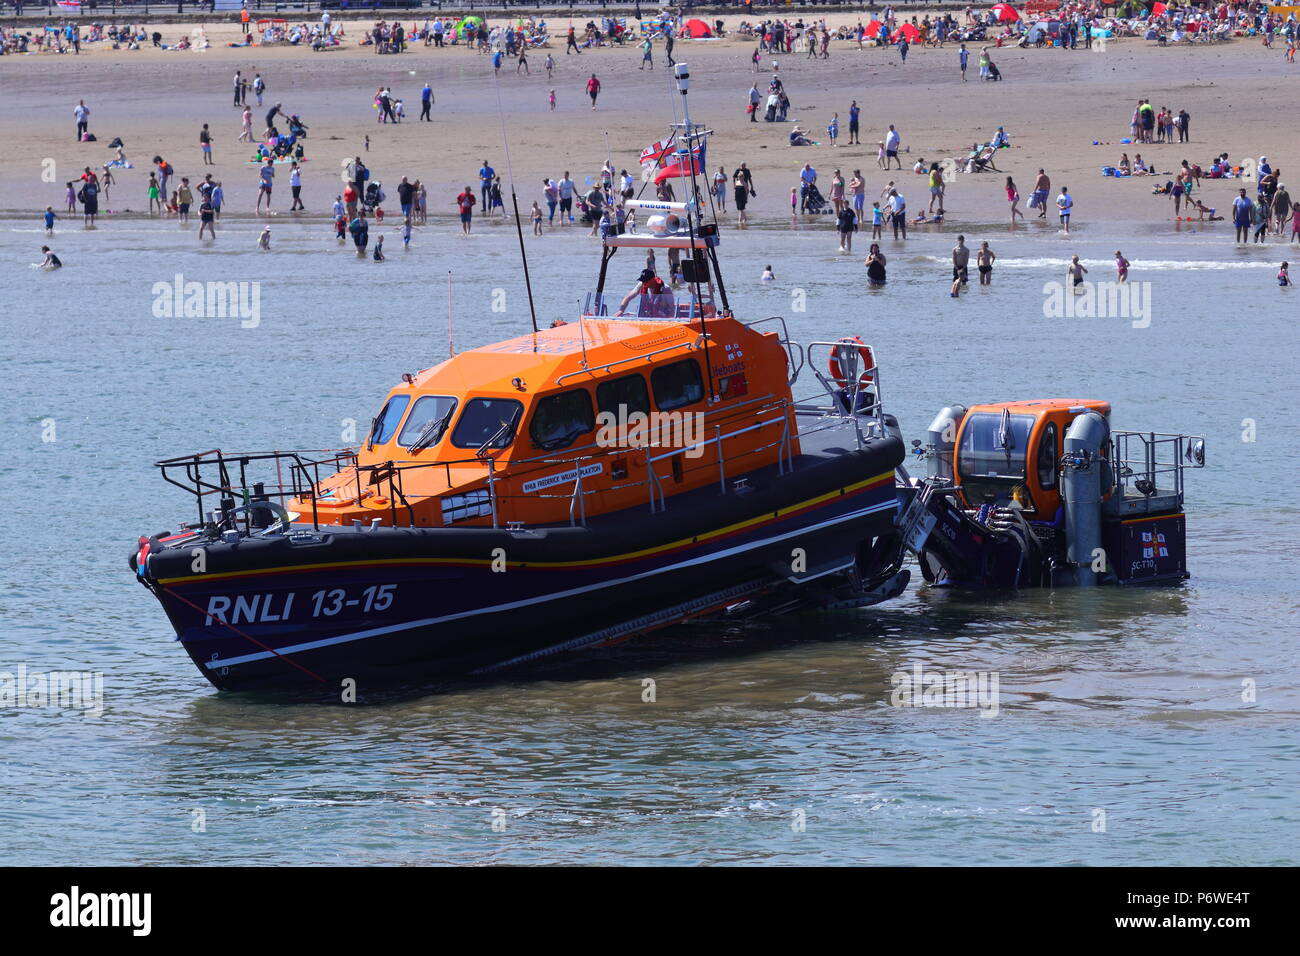 RNLI 13-15 Scarborough Lifeboat about to put on a publice training exercise during armed forces day. - Stock Image